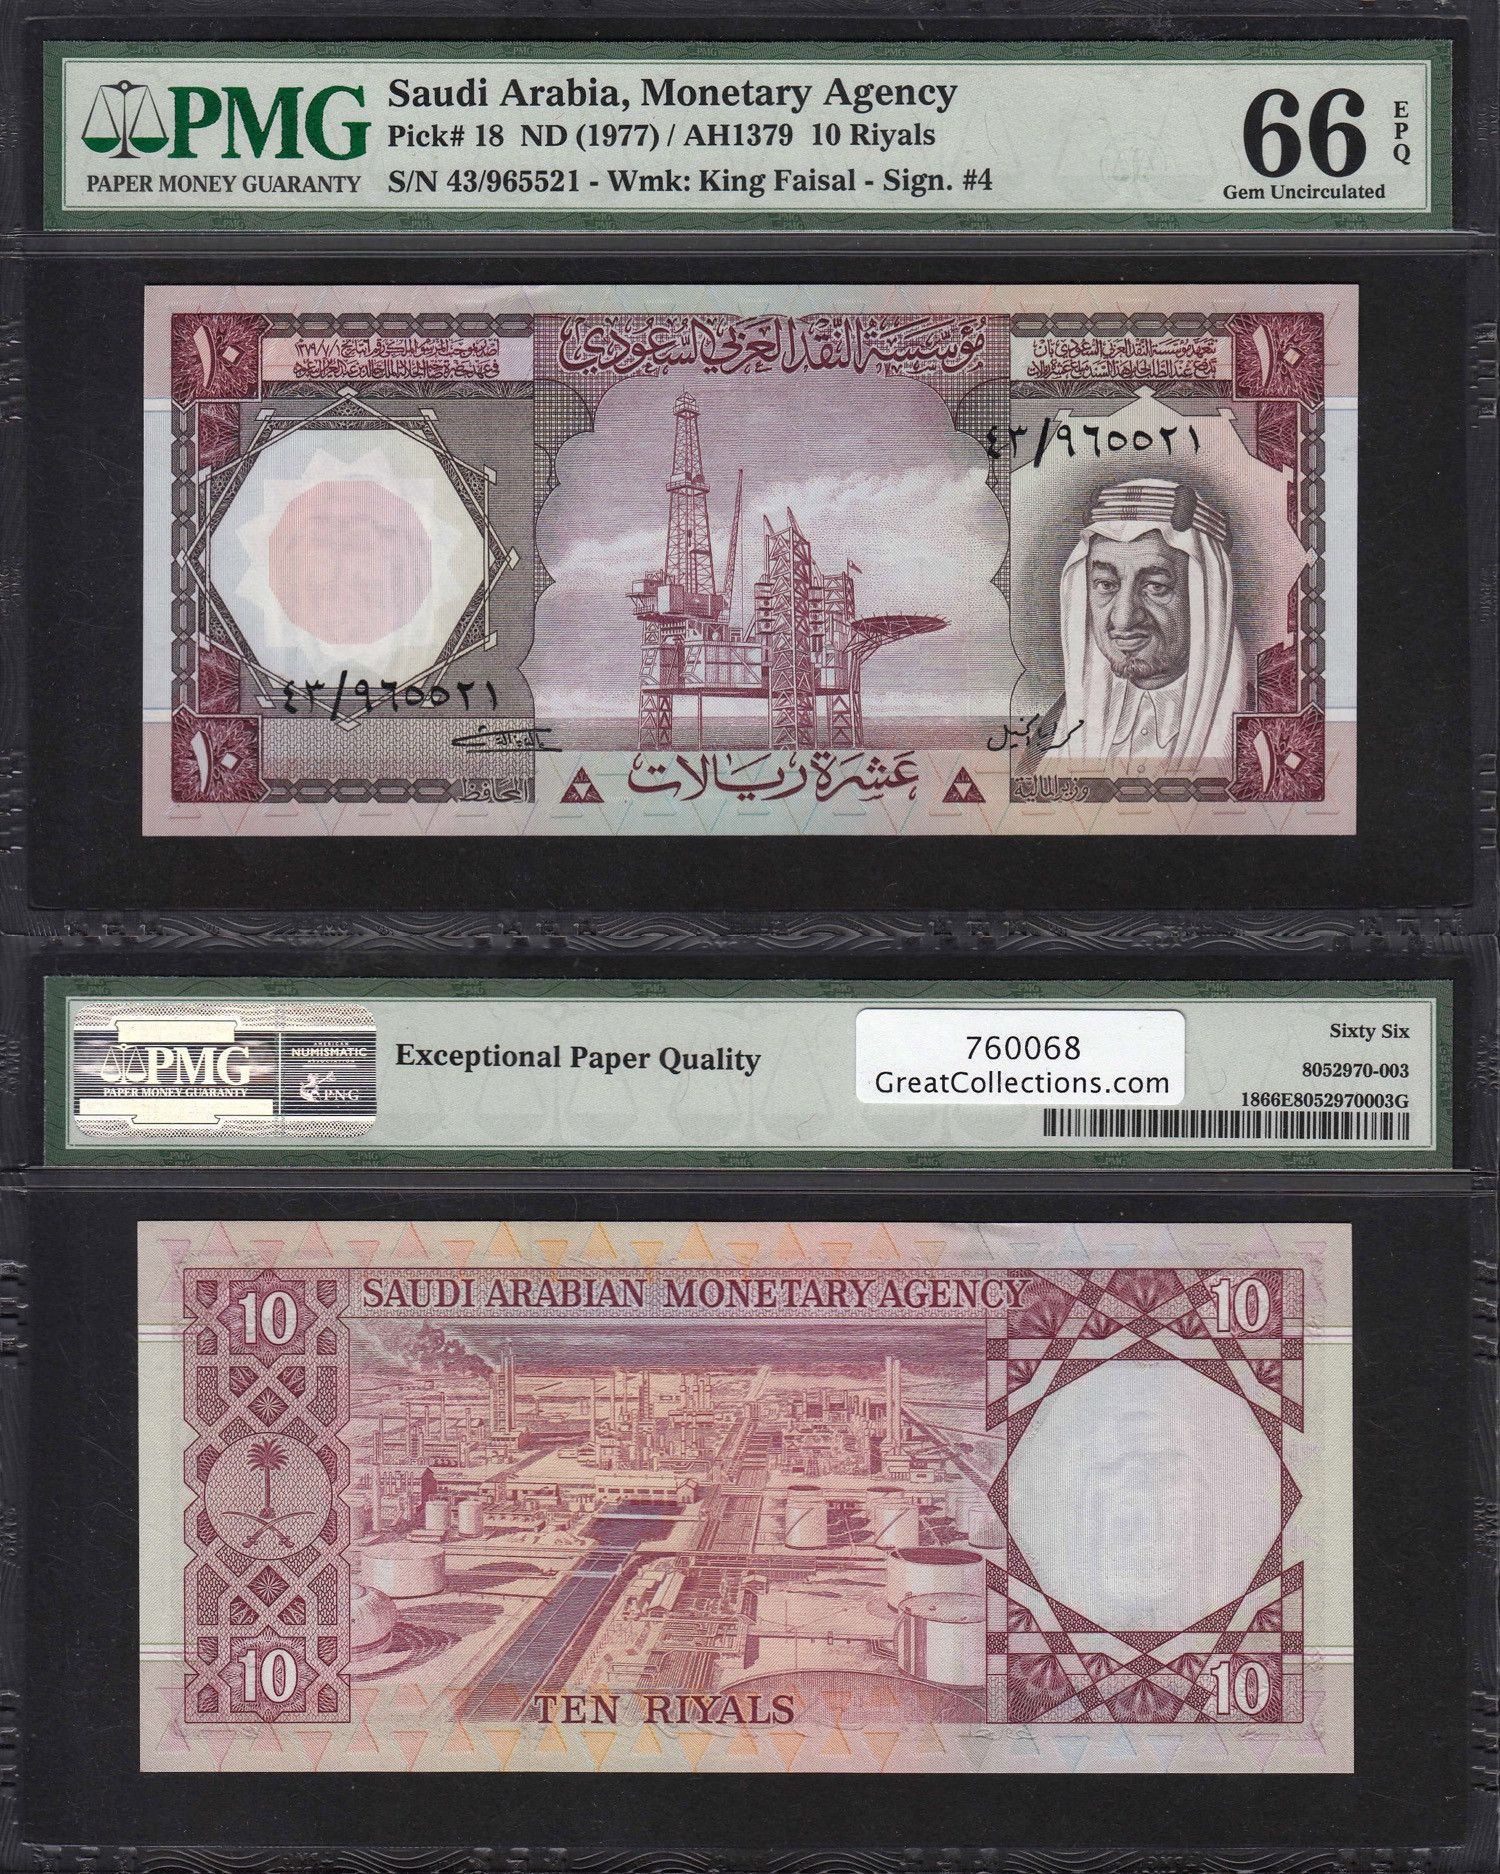 Pin By Greatcollections Com On Bank Notes Saudi Arabia Money Sell Coins Bank Notes